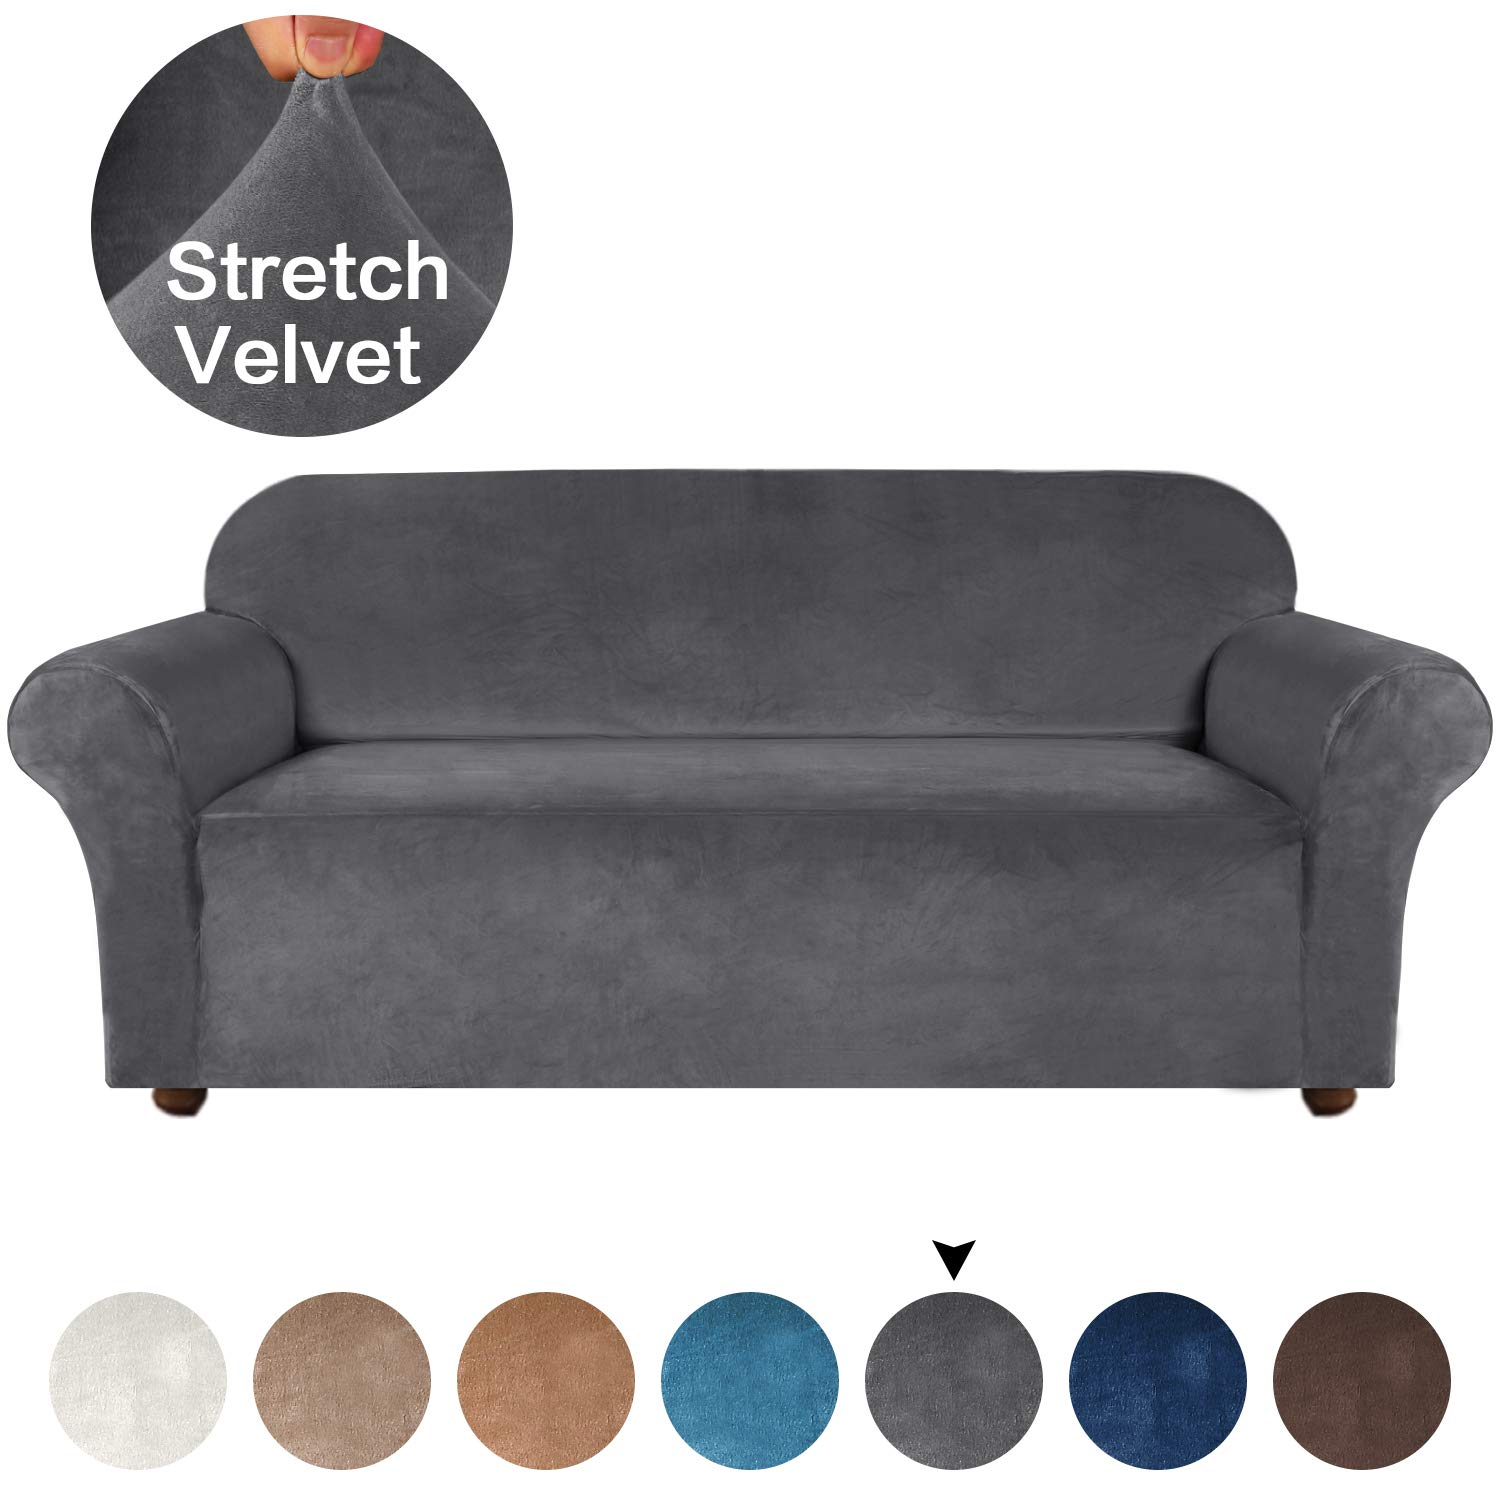 Turquoize Velvet Sofa Cover Stretch Sofa Slipcover Stylish Couch Cover 1-Piece Furniture Protector Washable Spandex Loveseat Slipcover & Couch Slipcover for Dogs (Sofa, Gray)